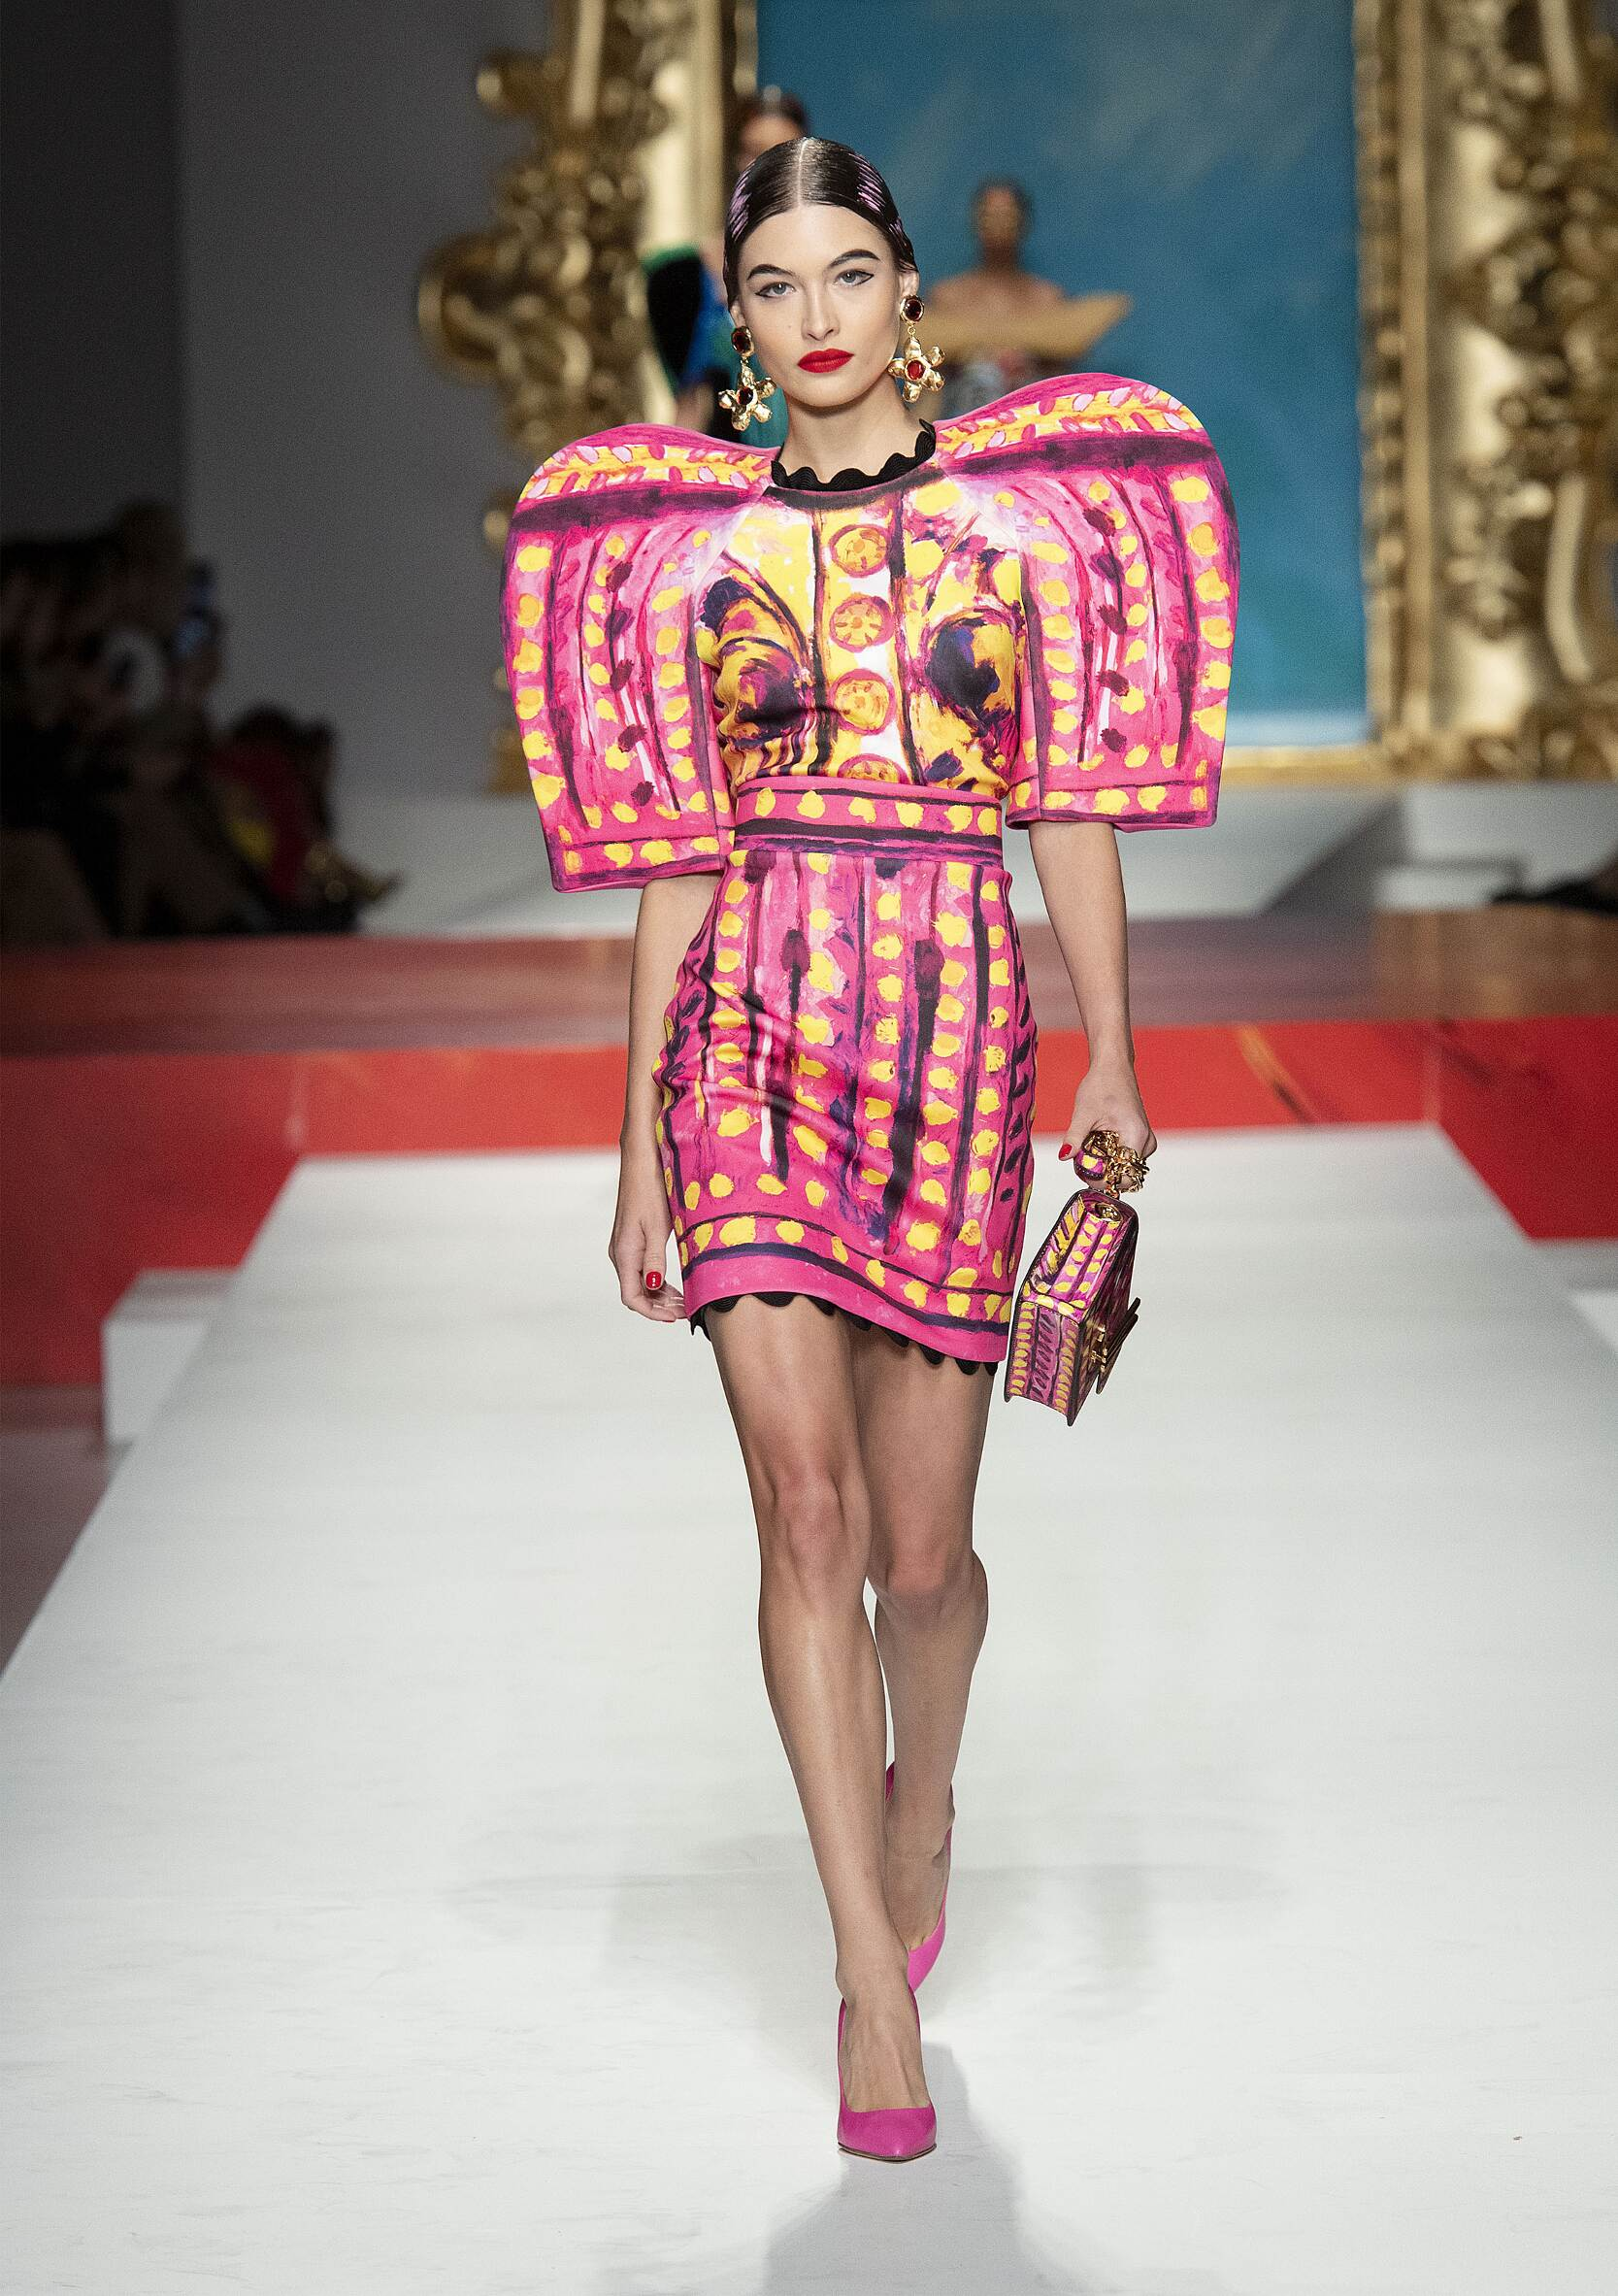 2020 Moschino Summer Catwalk